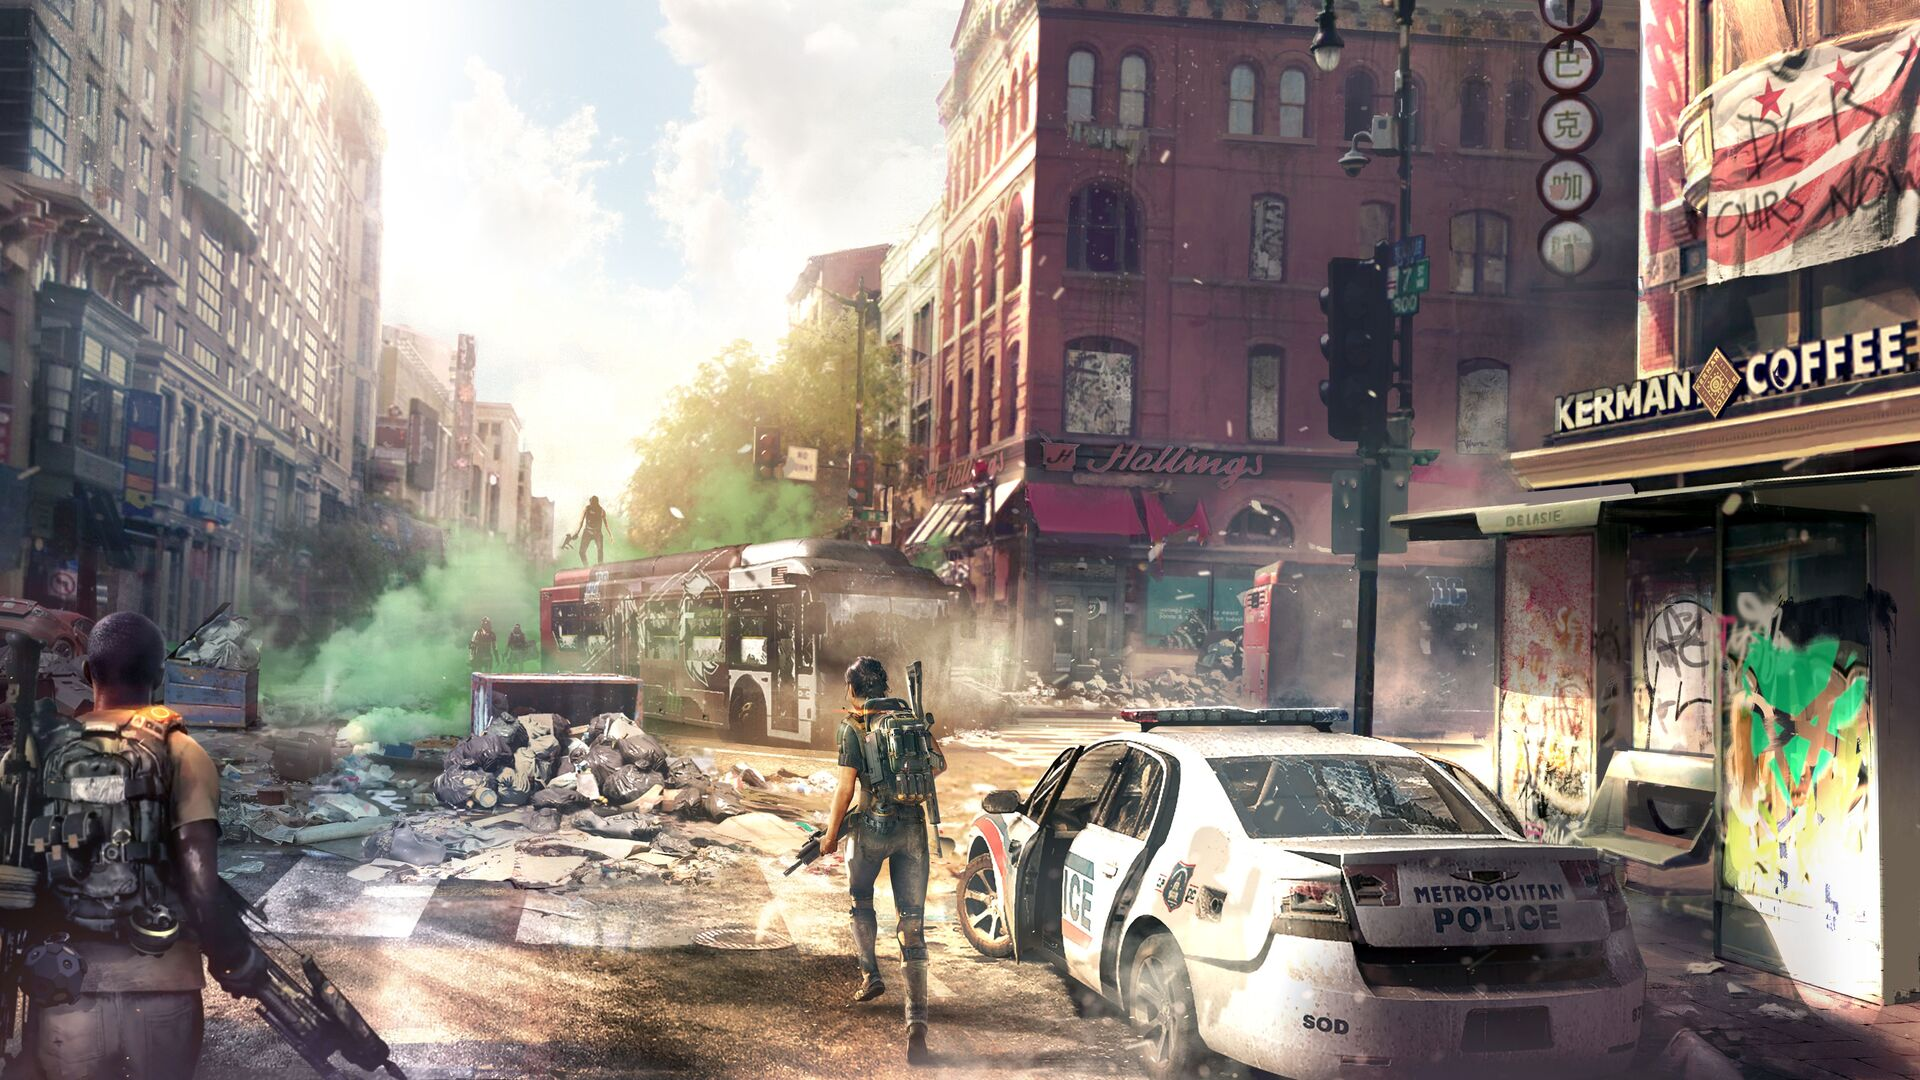 1920x1080 Tom Clancys The Division 2 Concept Art Downtown 8k